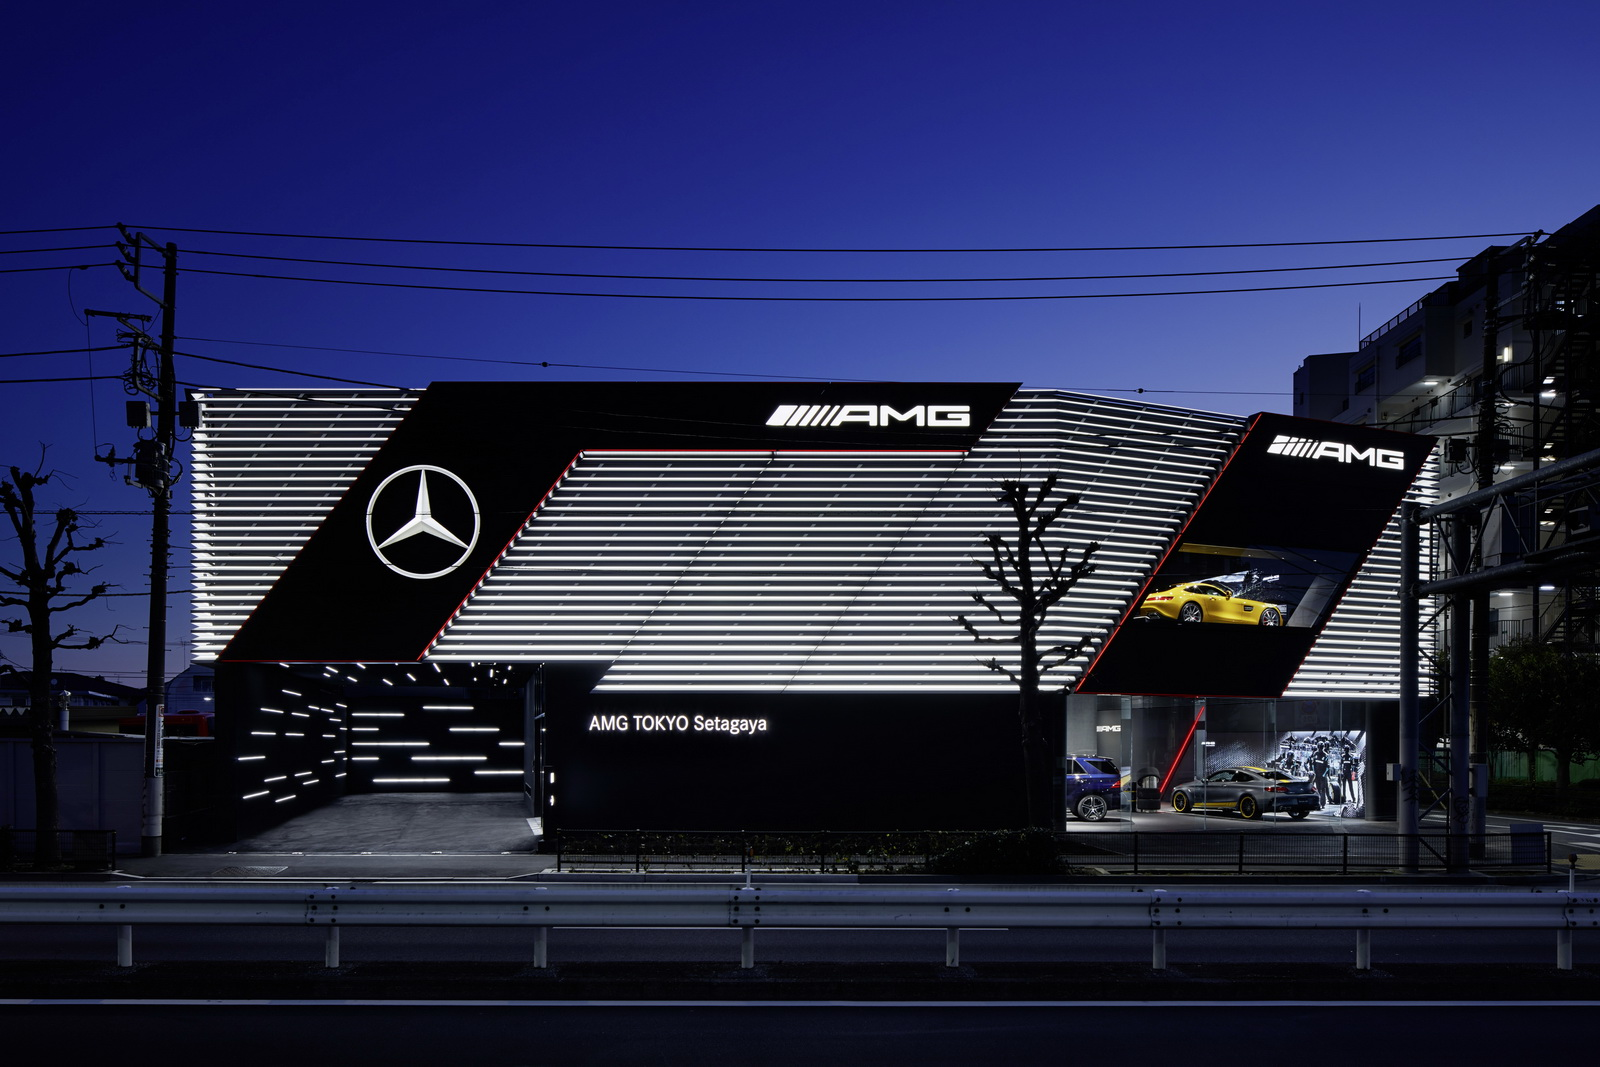 Mercedes-AMG Showroom in Tokio Setagaya ;Mercedes-AMG showroom in Tokyo Setagaya;